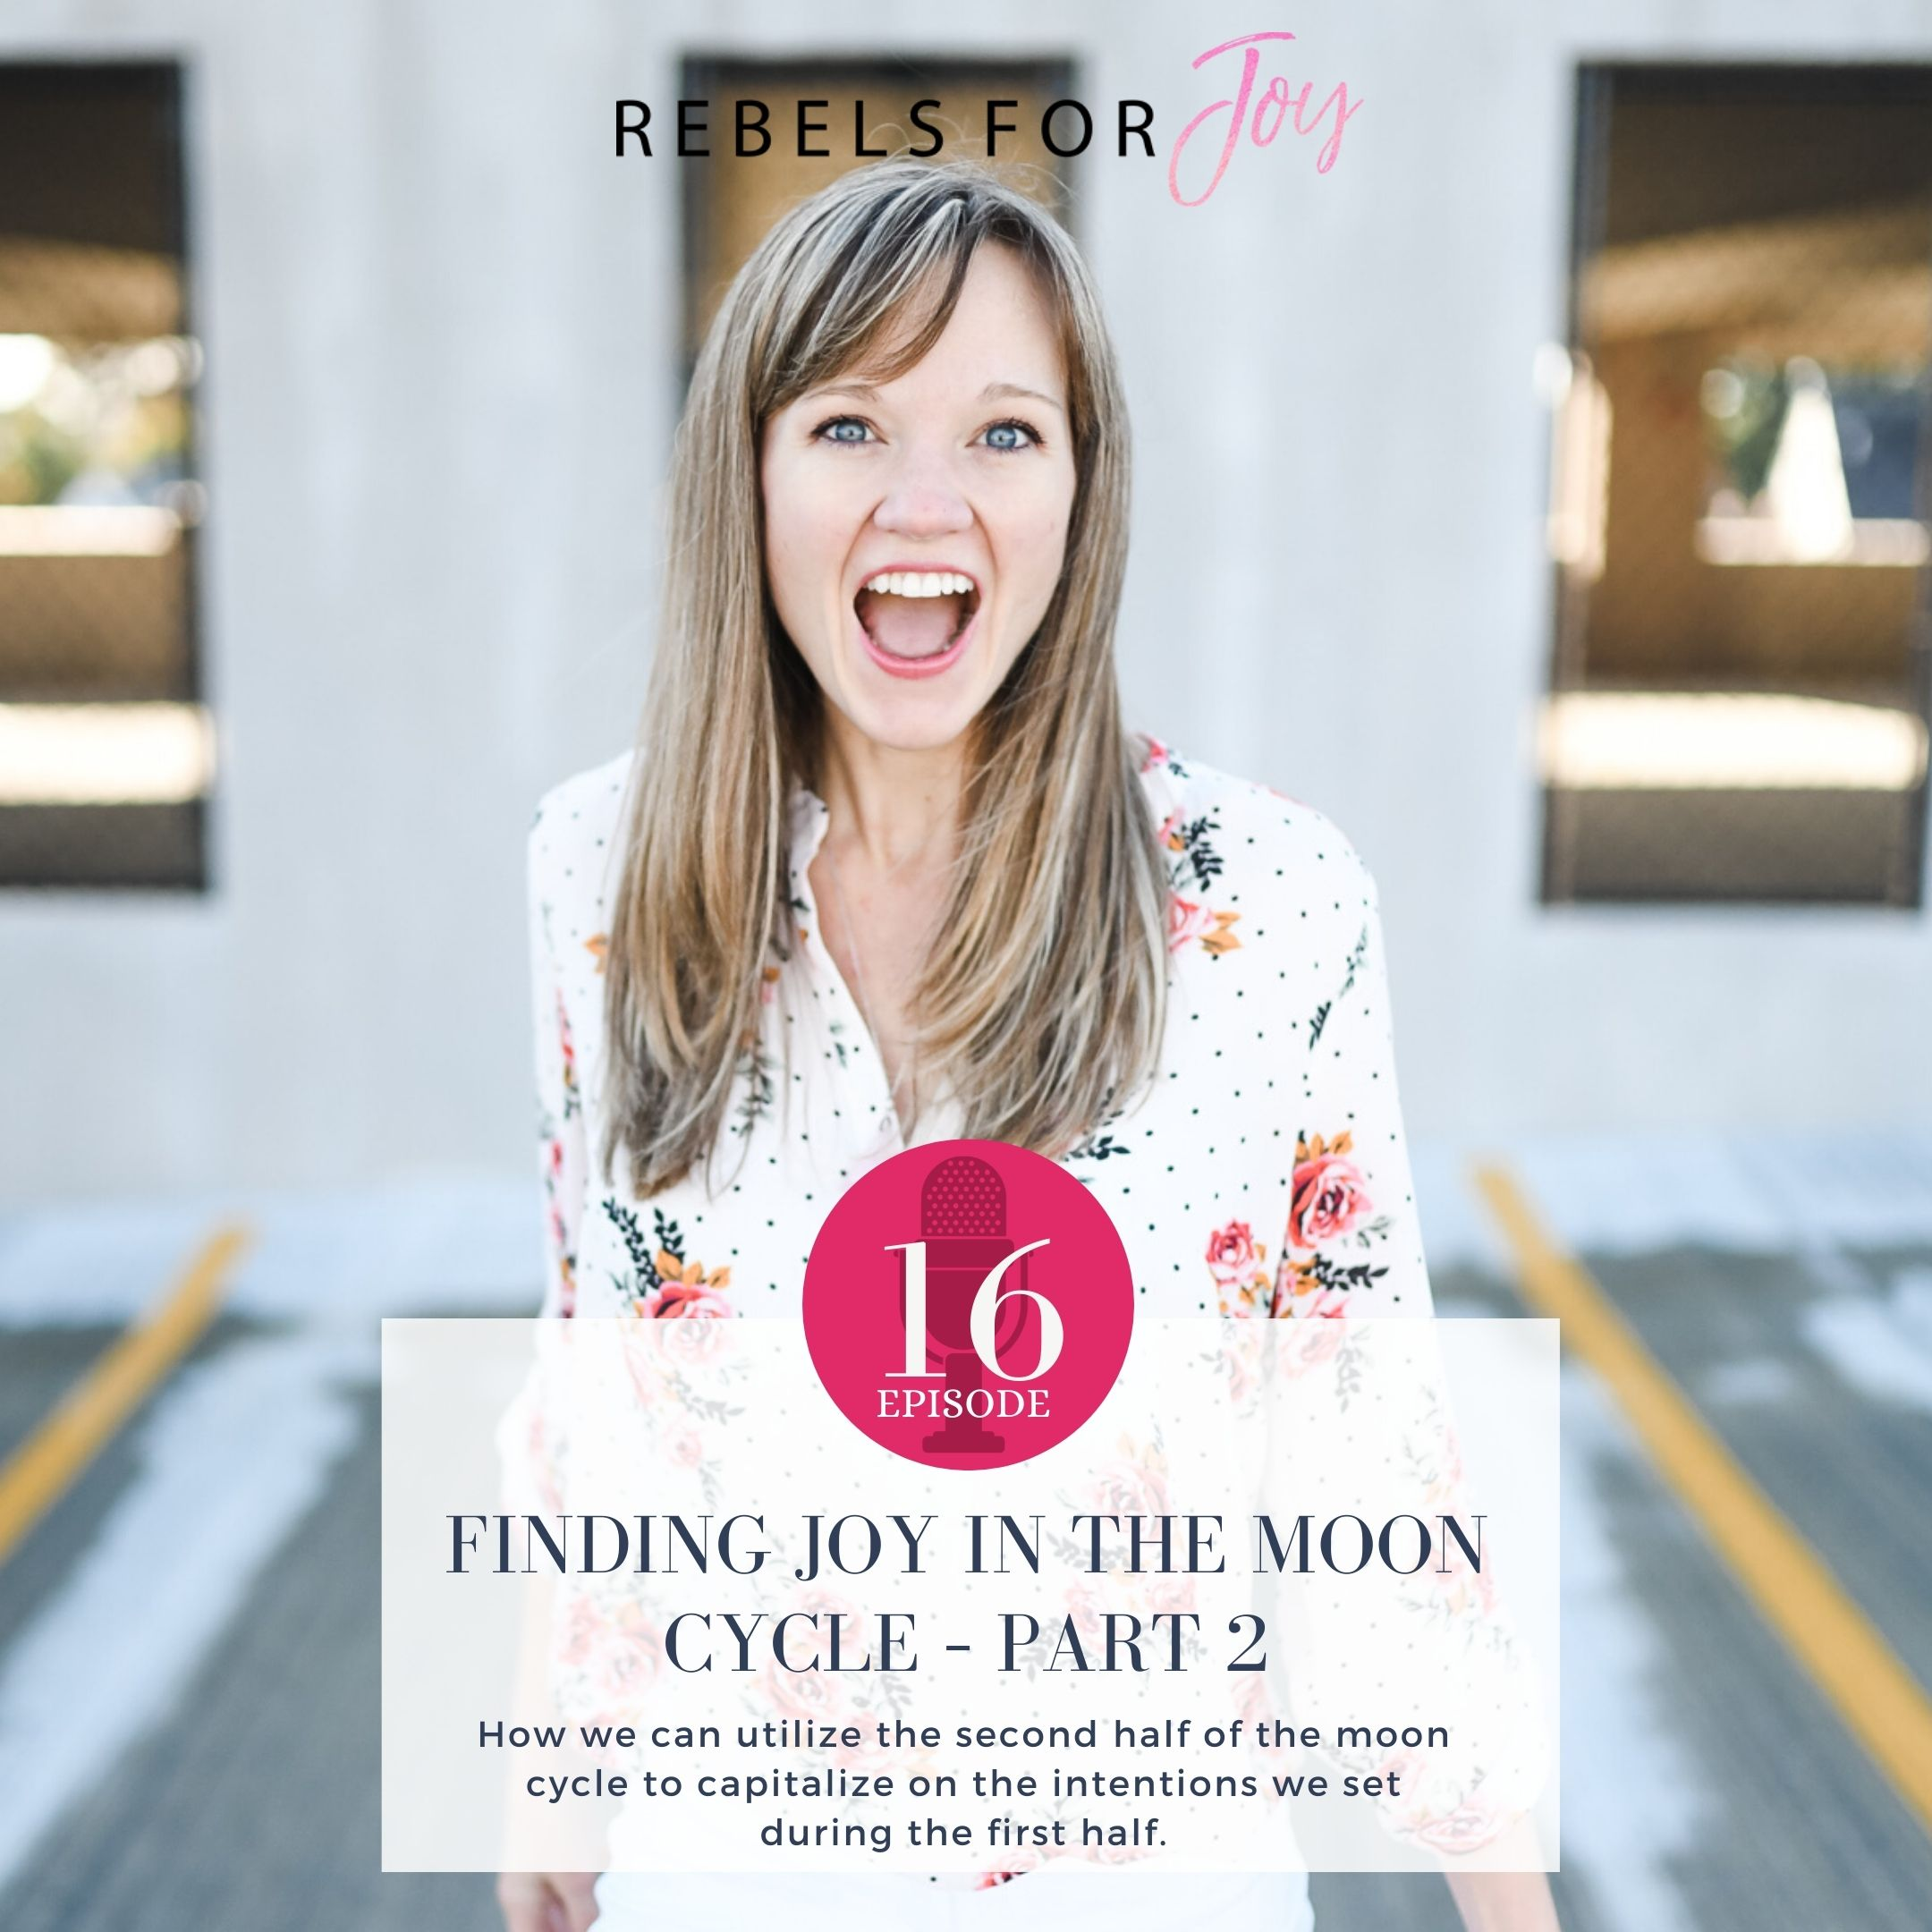 Episode 16: Finding Joy in the Moon Cycle – Part 2